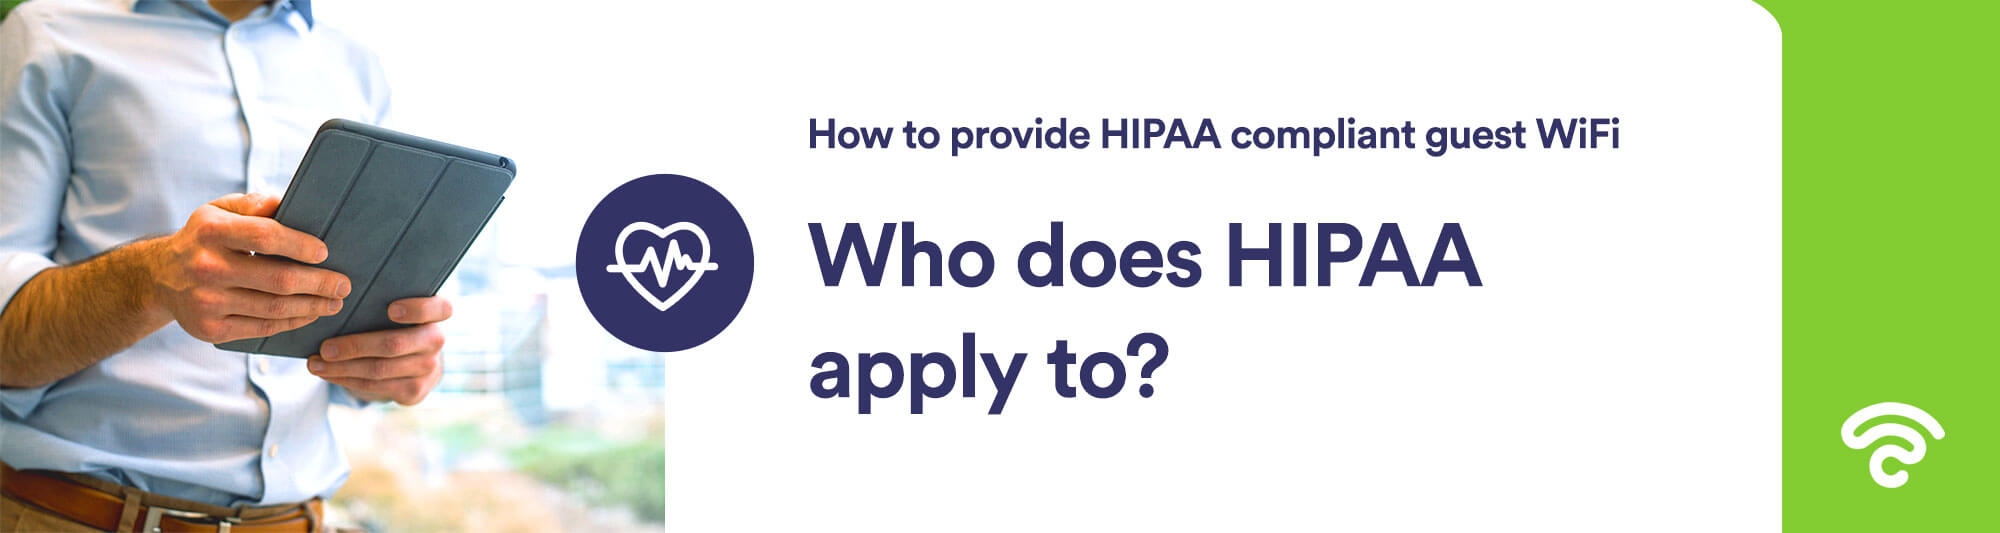 Who does HIPAA apply to